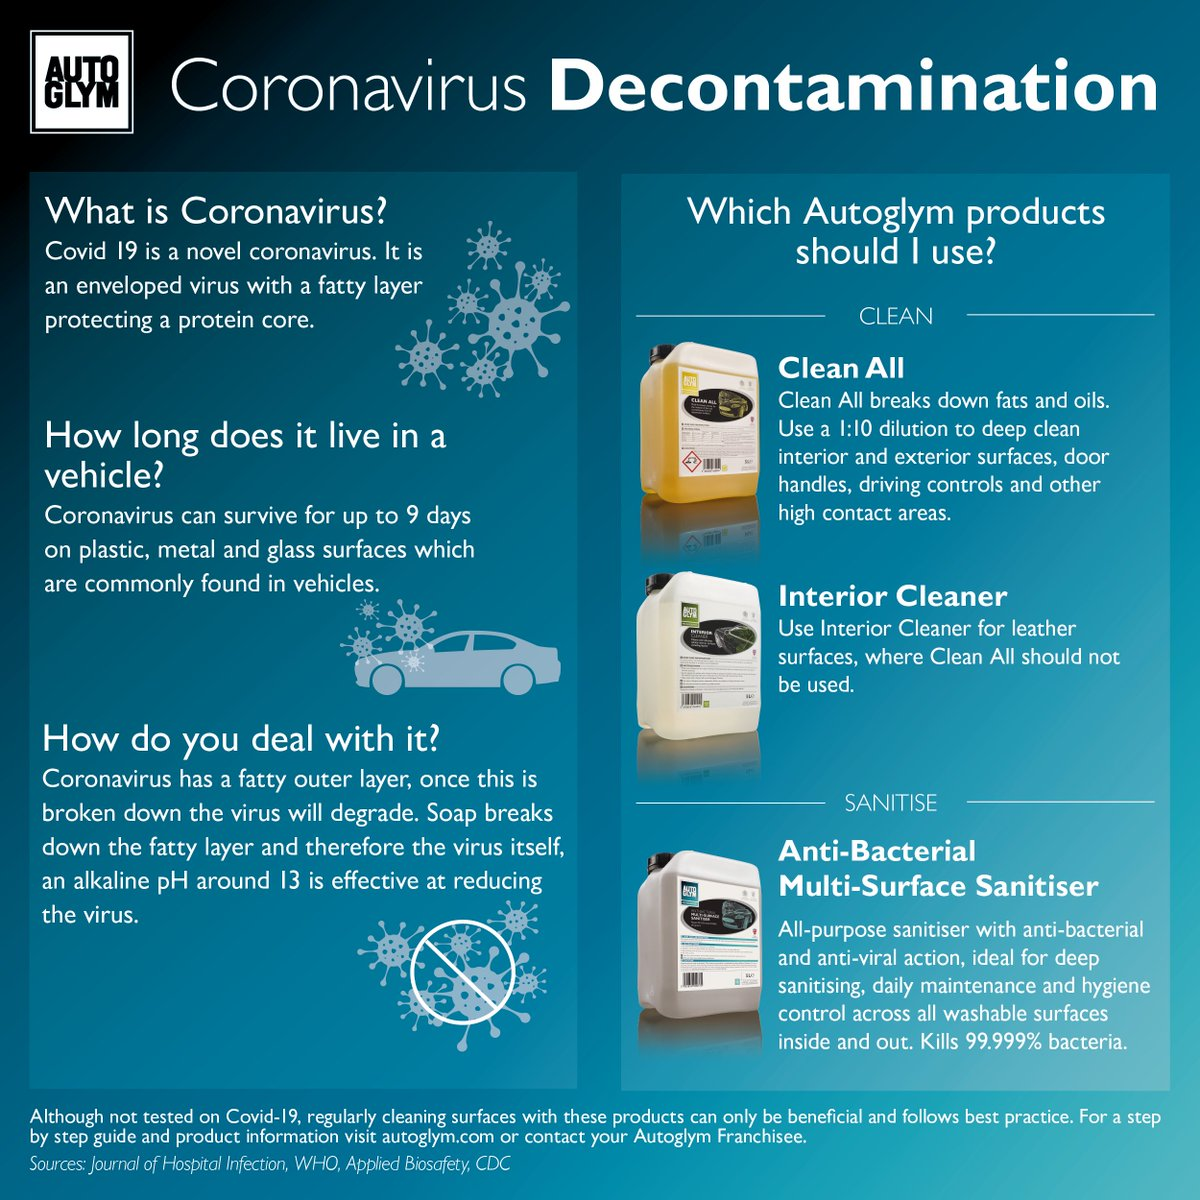 What is the Coronavirus and how long can it live in a vehicle? Find out below and the recommended products to use for your vehicles! #staycleanstaysafe https://t.co/k6BV87zogB